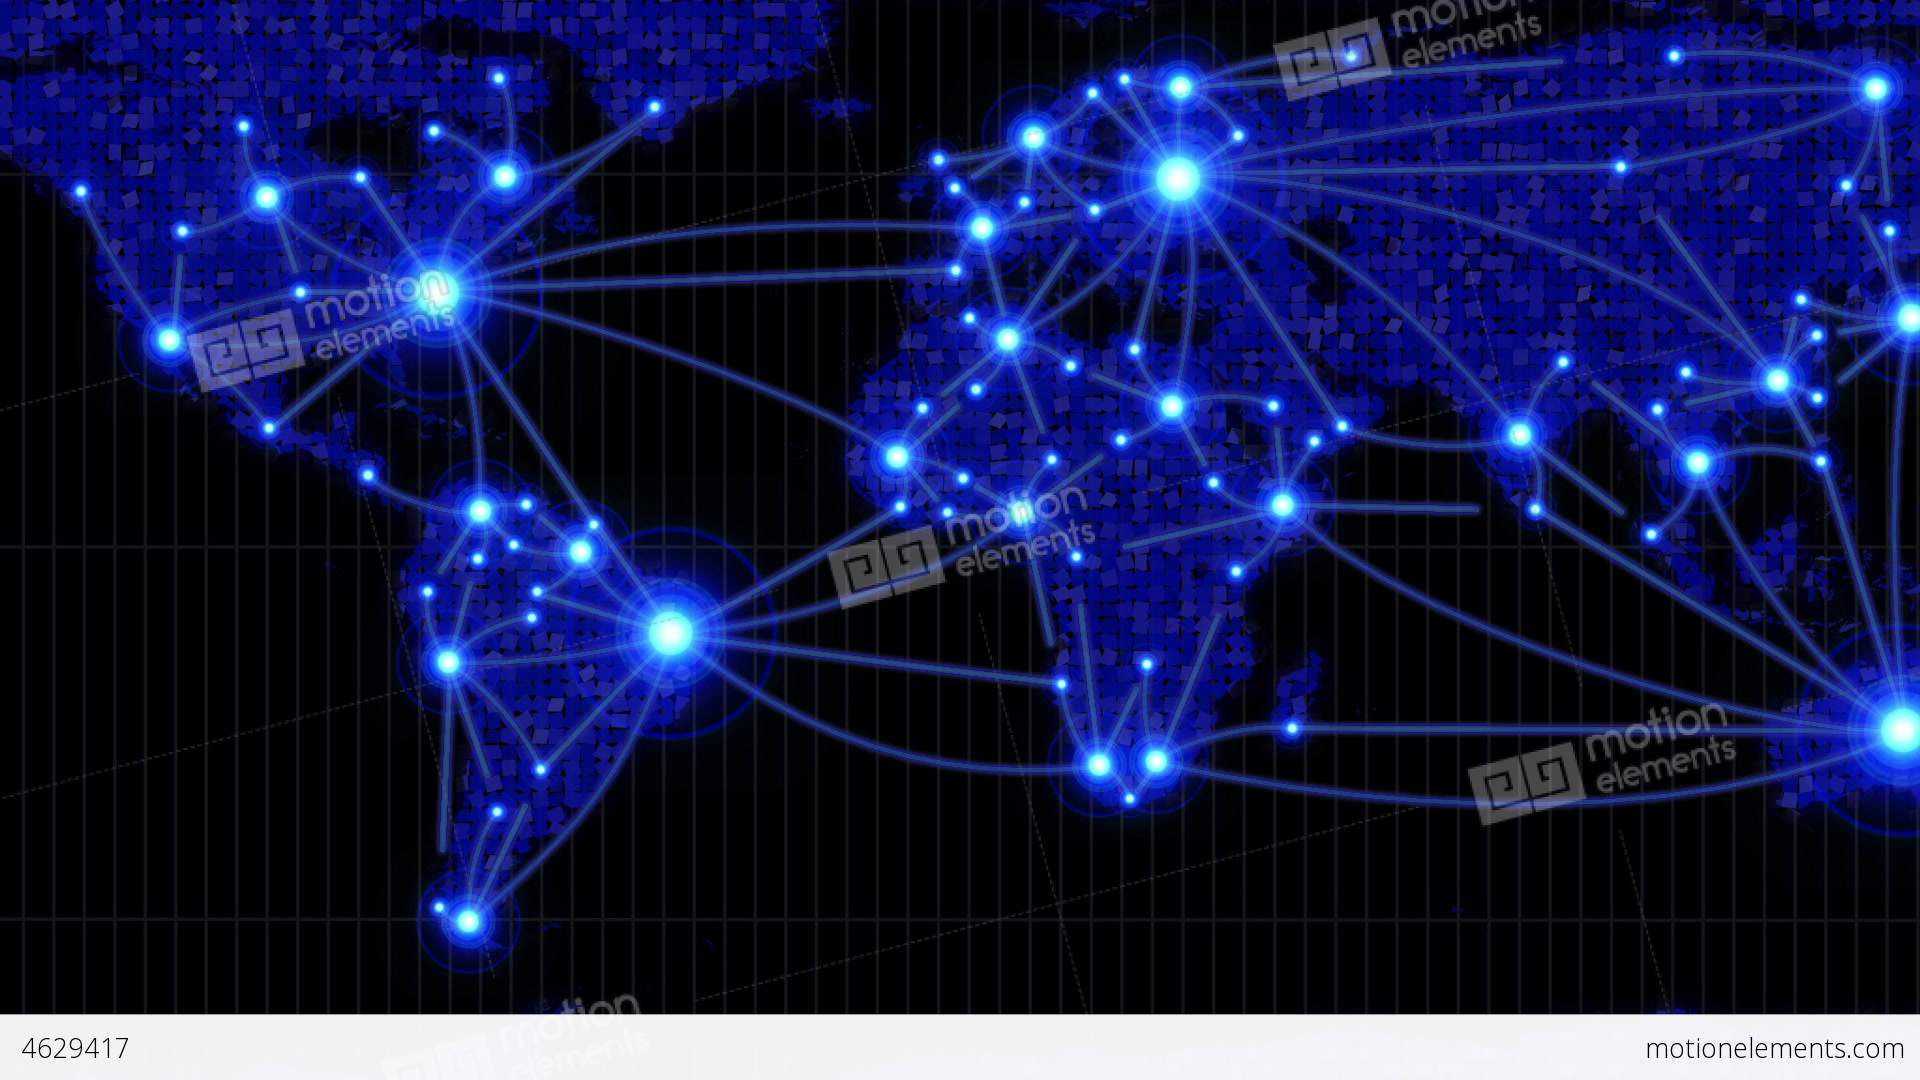 Lines showing countries connecting on world map stock animation lines showing countries connecting on world map stock video footage gumiabroncs Gallery